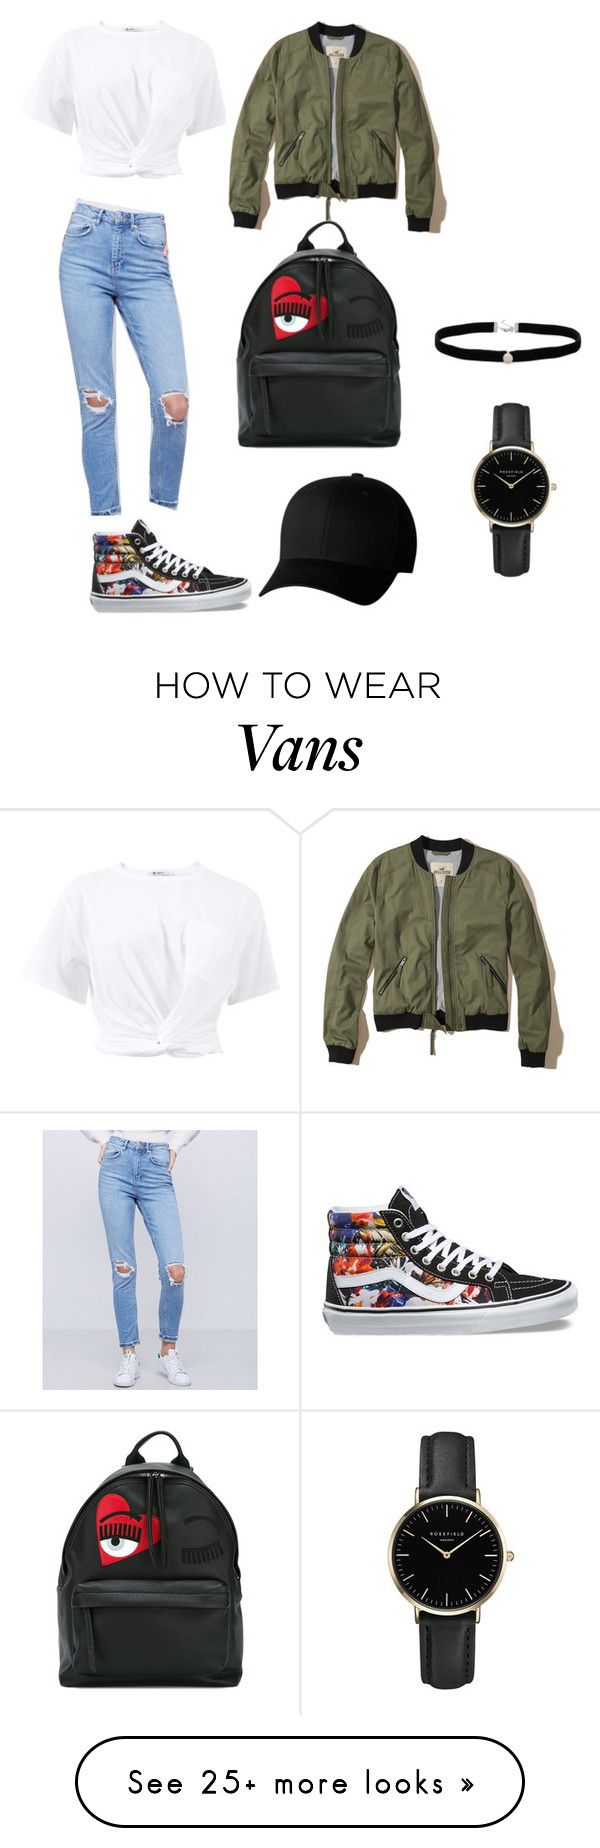 """""""RM"""" by buket-tugay on Polyvore featuring T By Alexander Wang, Hollister Co., Vans, Chiara Ferragni, Flexfit, ROSEFIELD and Amanda Rose Collection"""